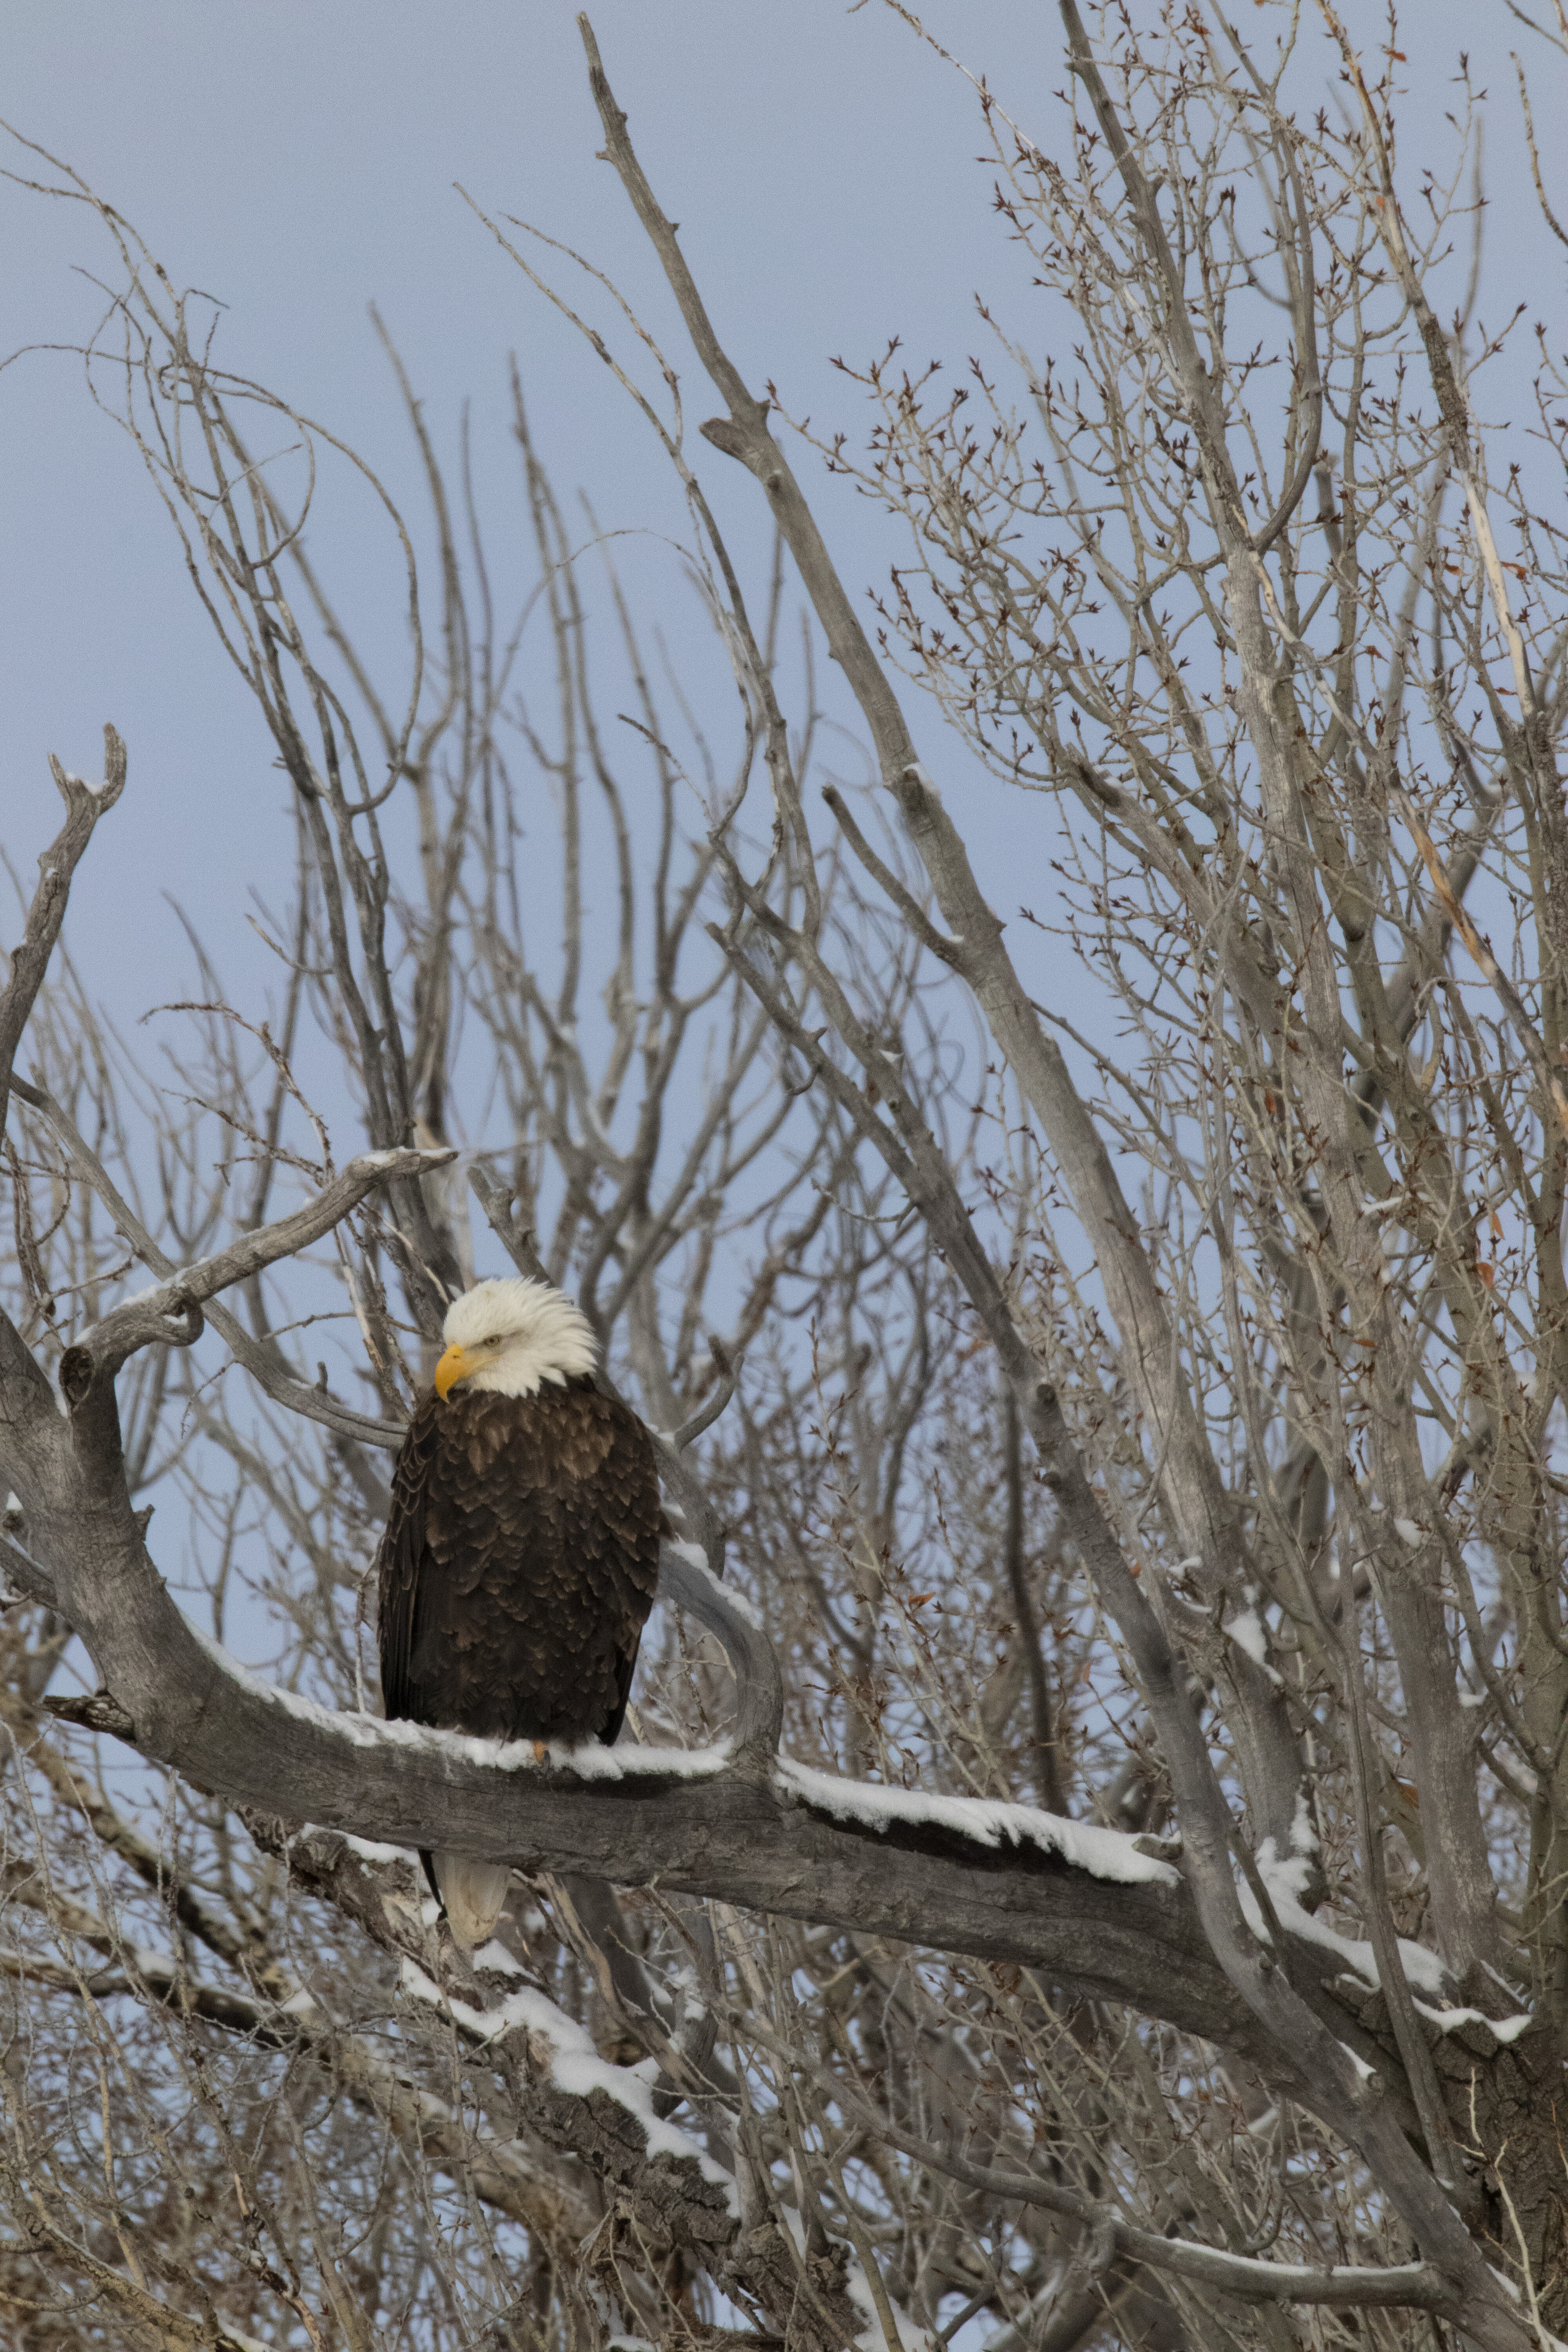 55512 download wallpaper Animals, Bald Eagle, White-Headed Eagle, Eagle, Bird, Wood, Tree, Branches screensavers and pictures for free